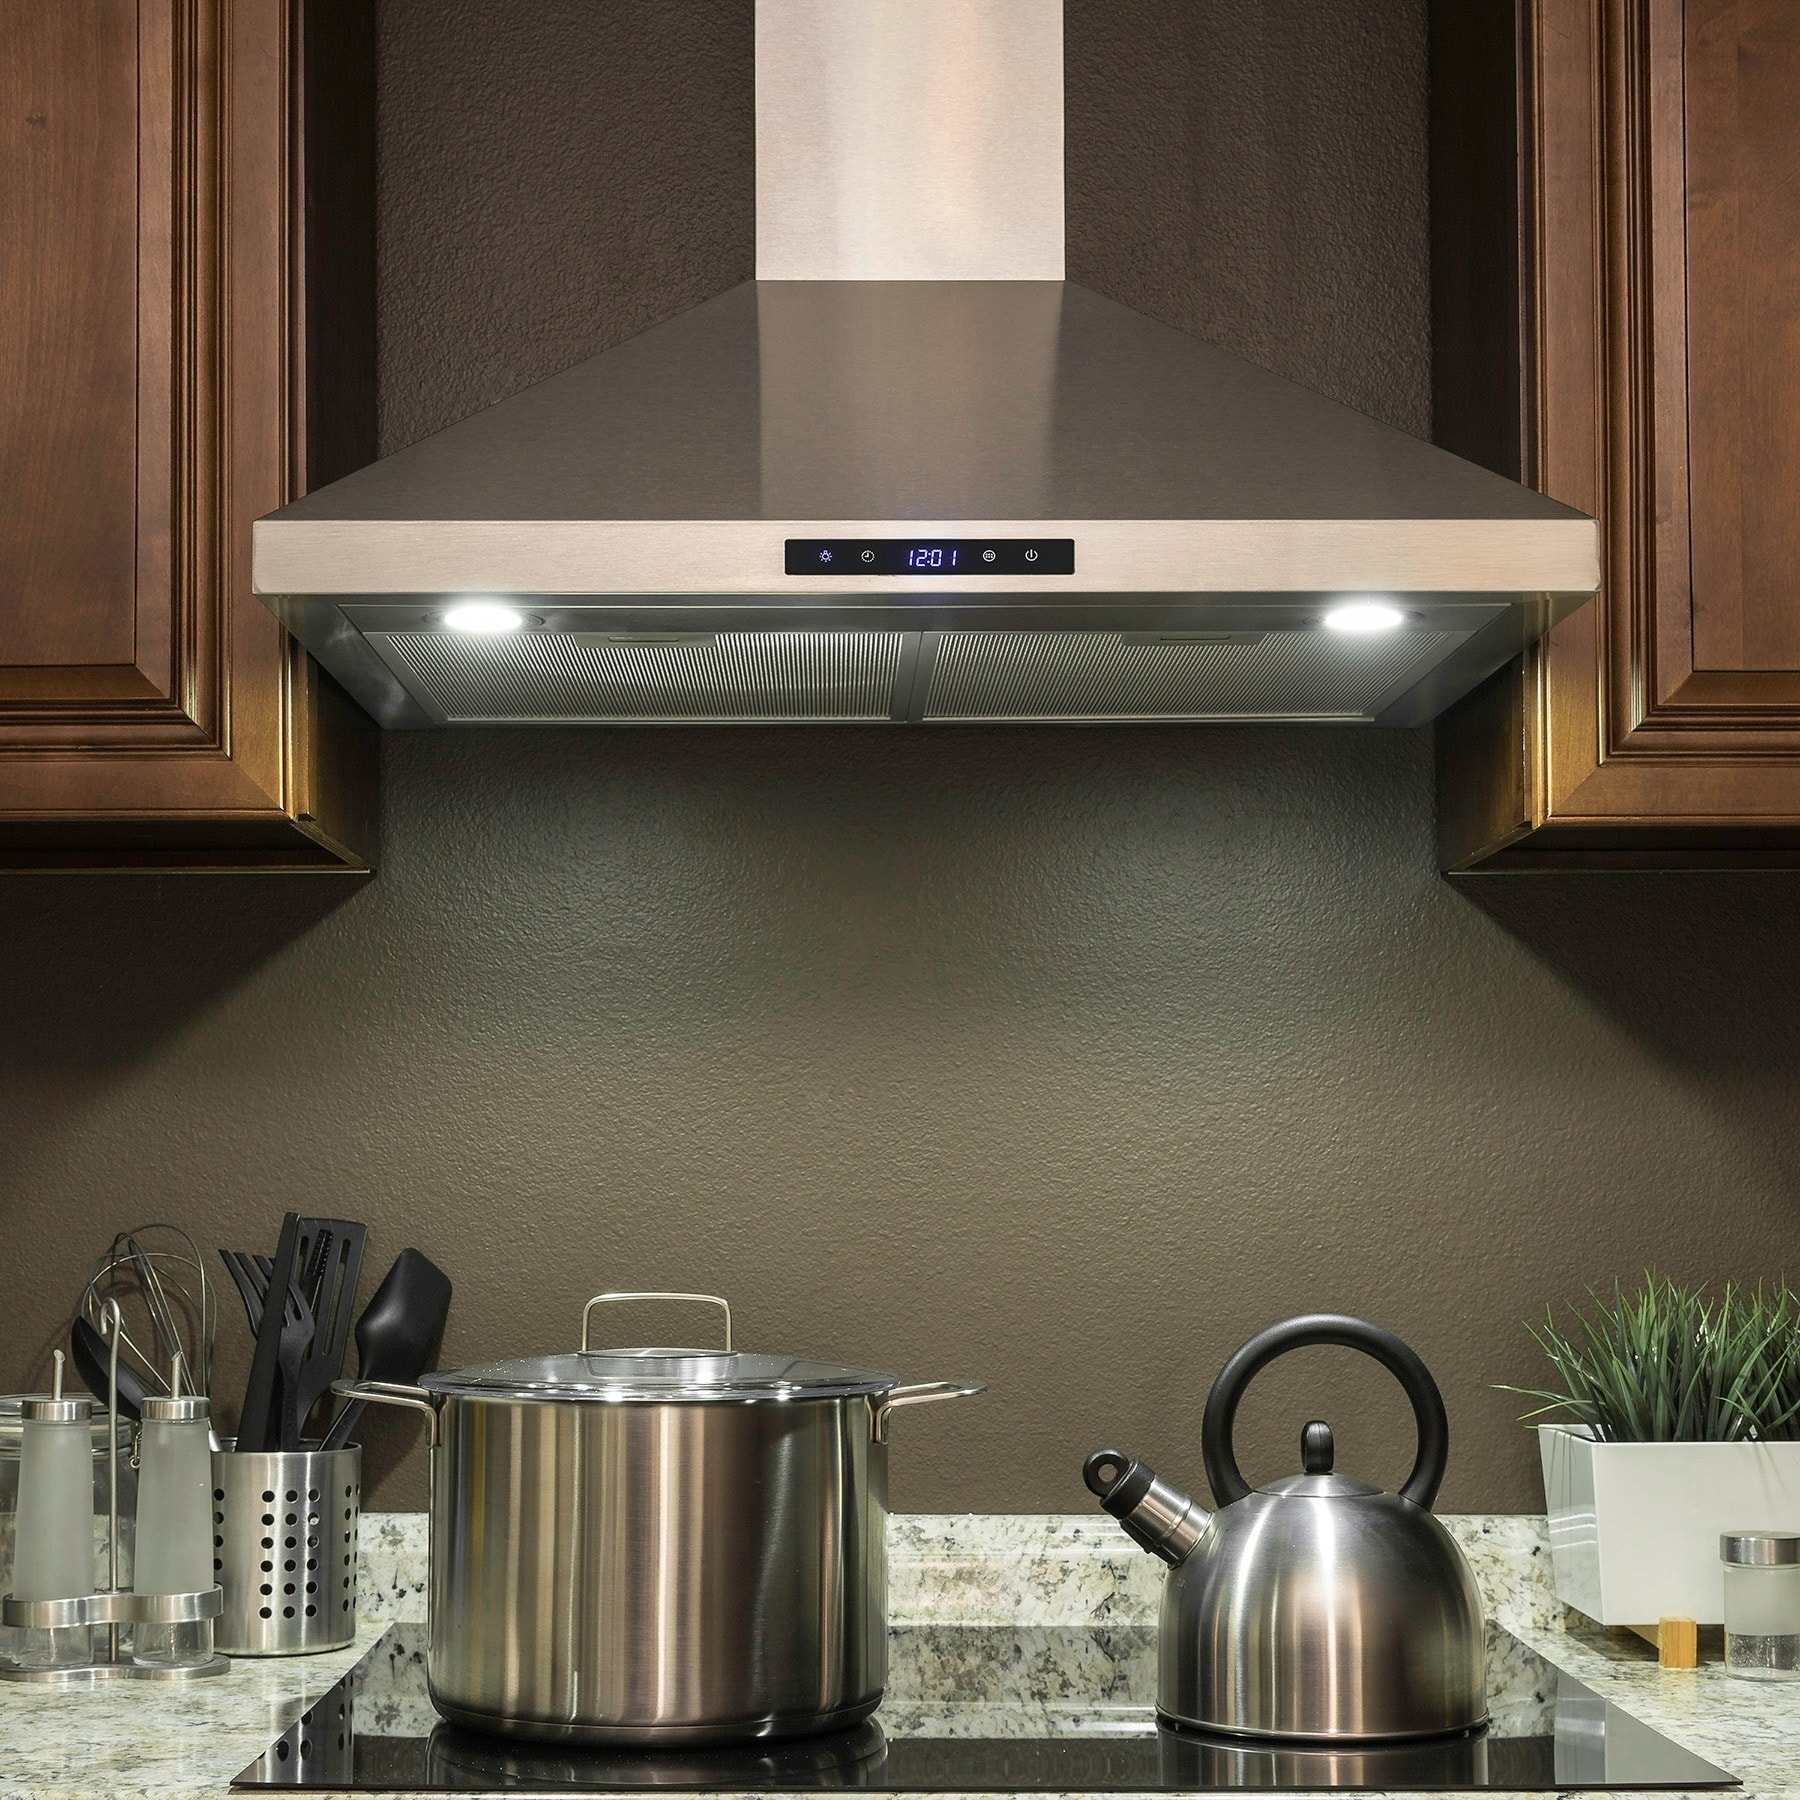 36 Stainless Steel Wall Mount Range Hood Touch Control W Mesh Filters And Clock Ranges Cooking Appliances Major Appliances